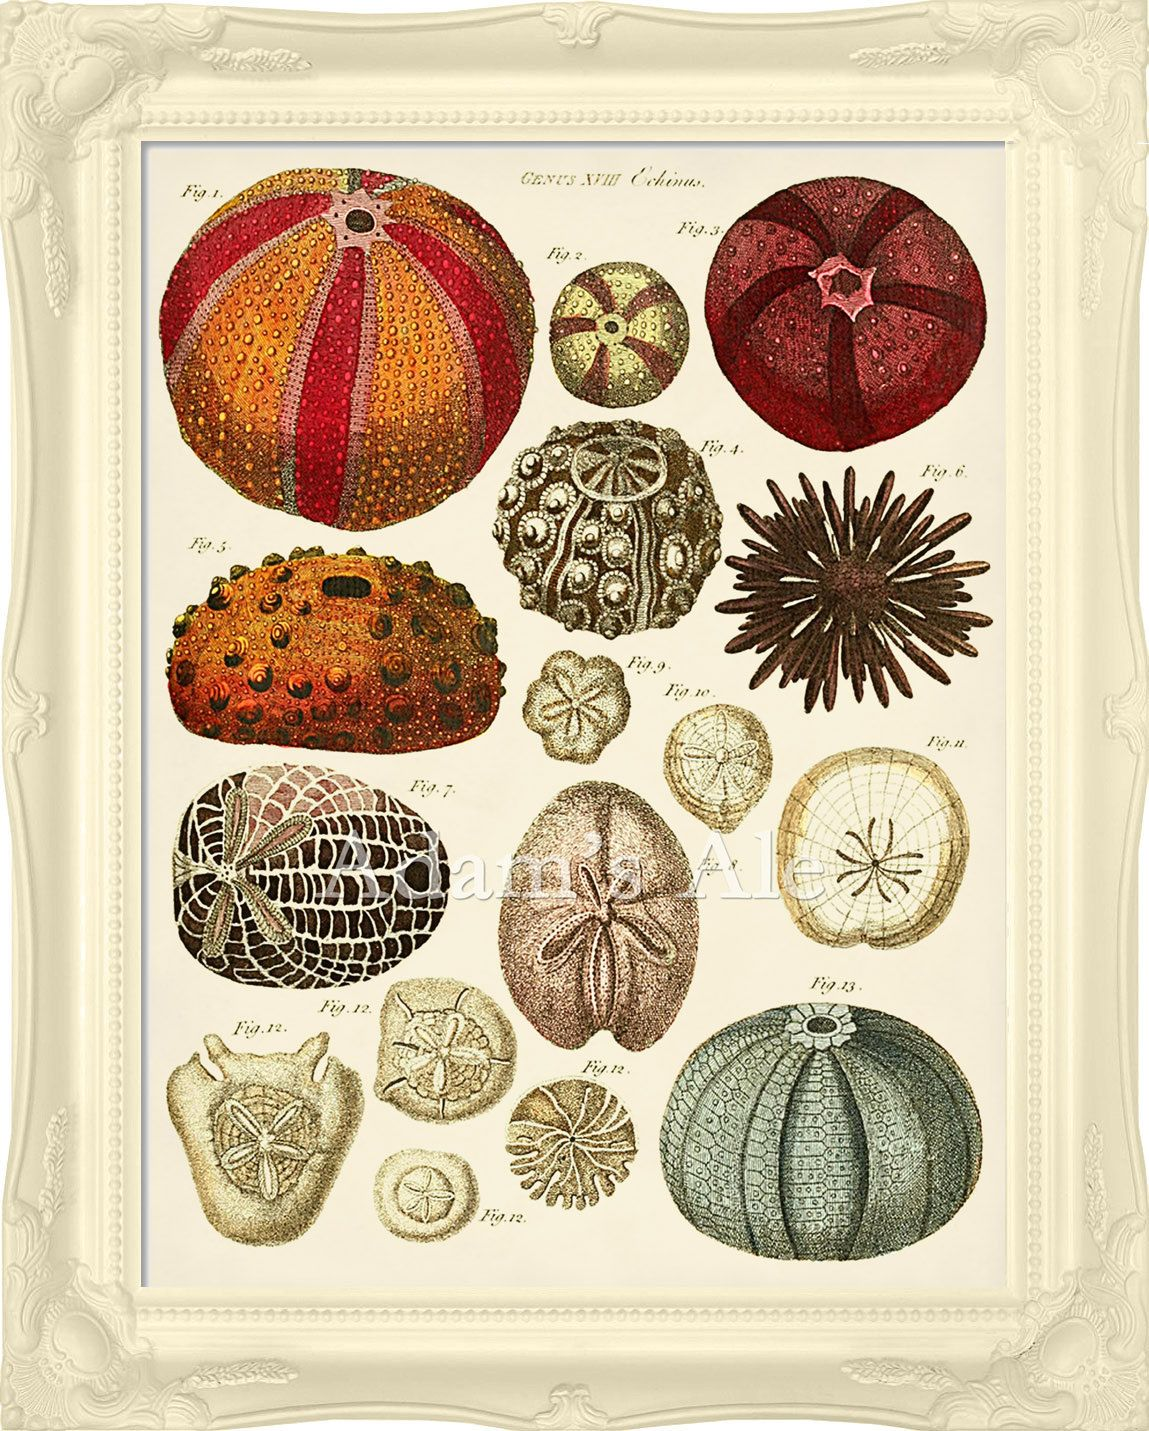 Vintage Seashell Art Poster: Very Colorful Sea Urchins From British Natural History Circa 1783 Text. $18.00, via Etsy.